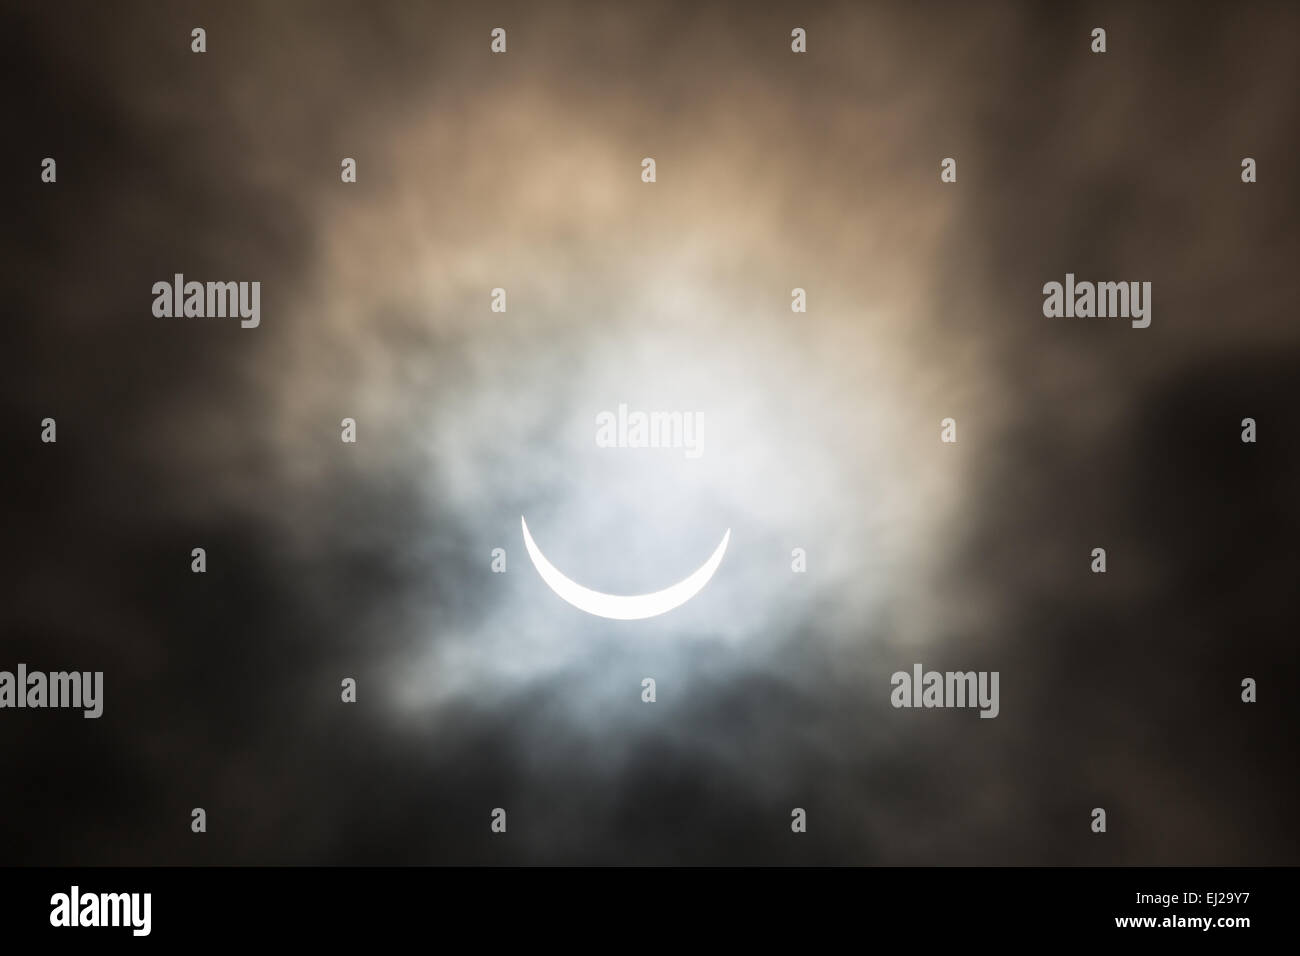 Sheffield, UK. 20th Mar, 2015. Partial solar eclipse seen from Sheffield, UK, on 20th March 2015. Partial cloud - Stock Image